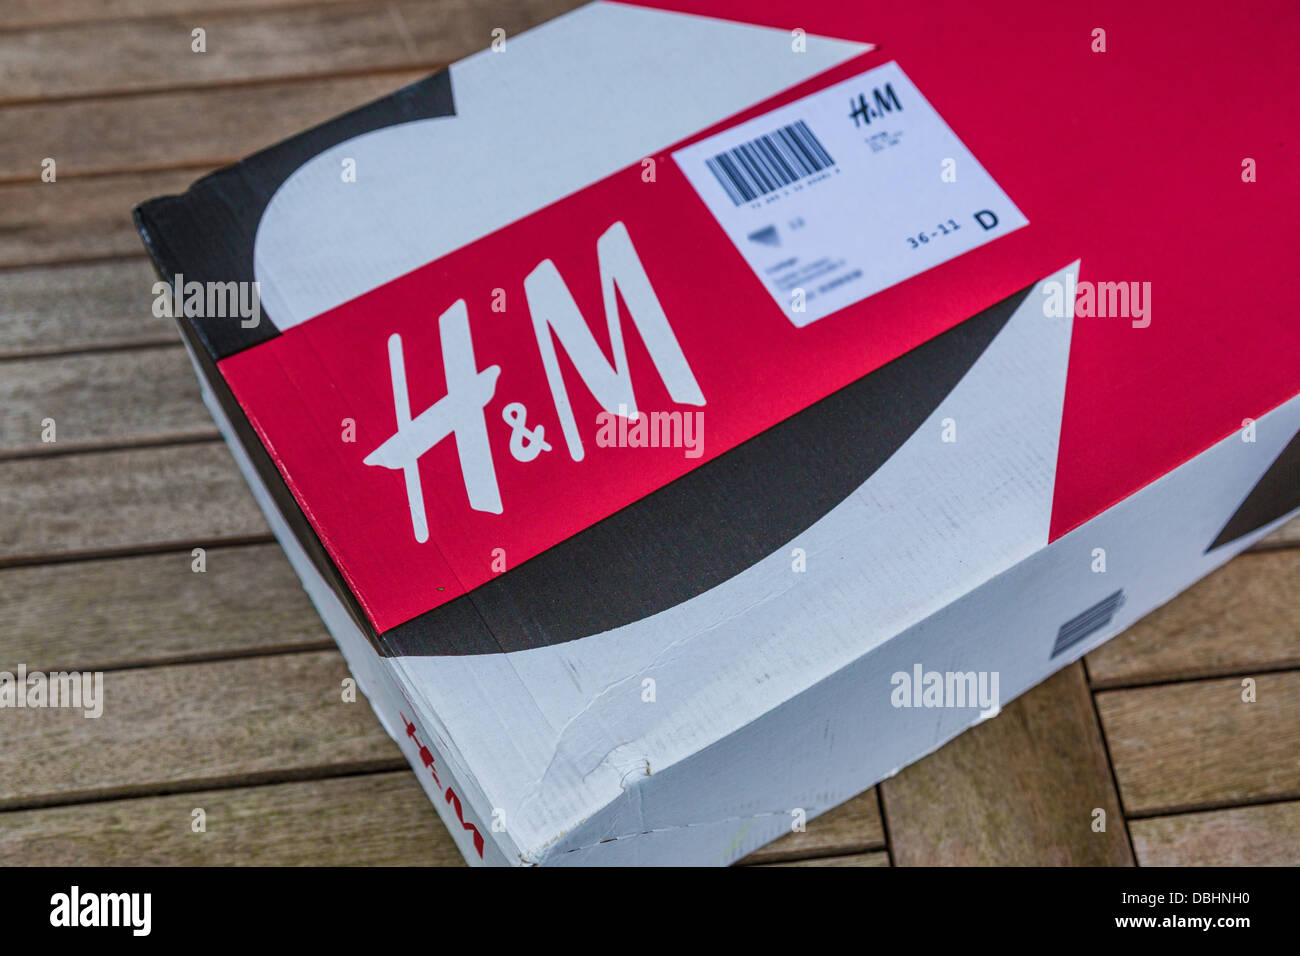 Package of fashion retailer H&M. Stock Photo